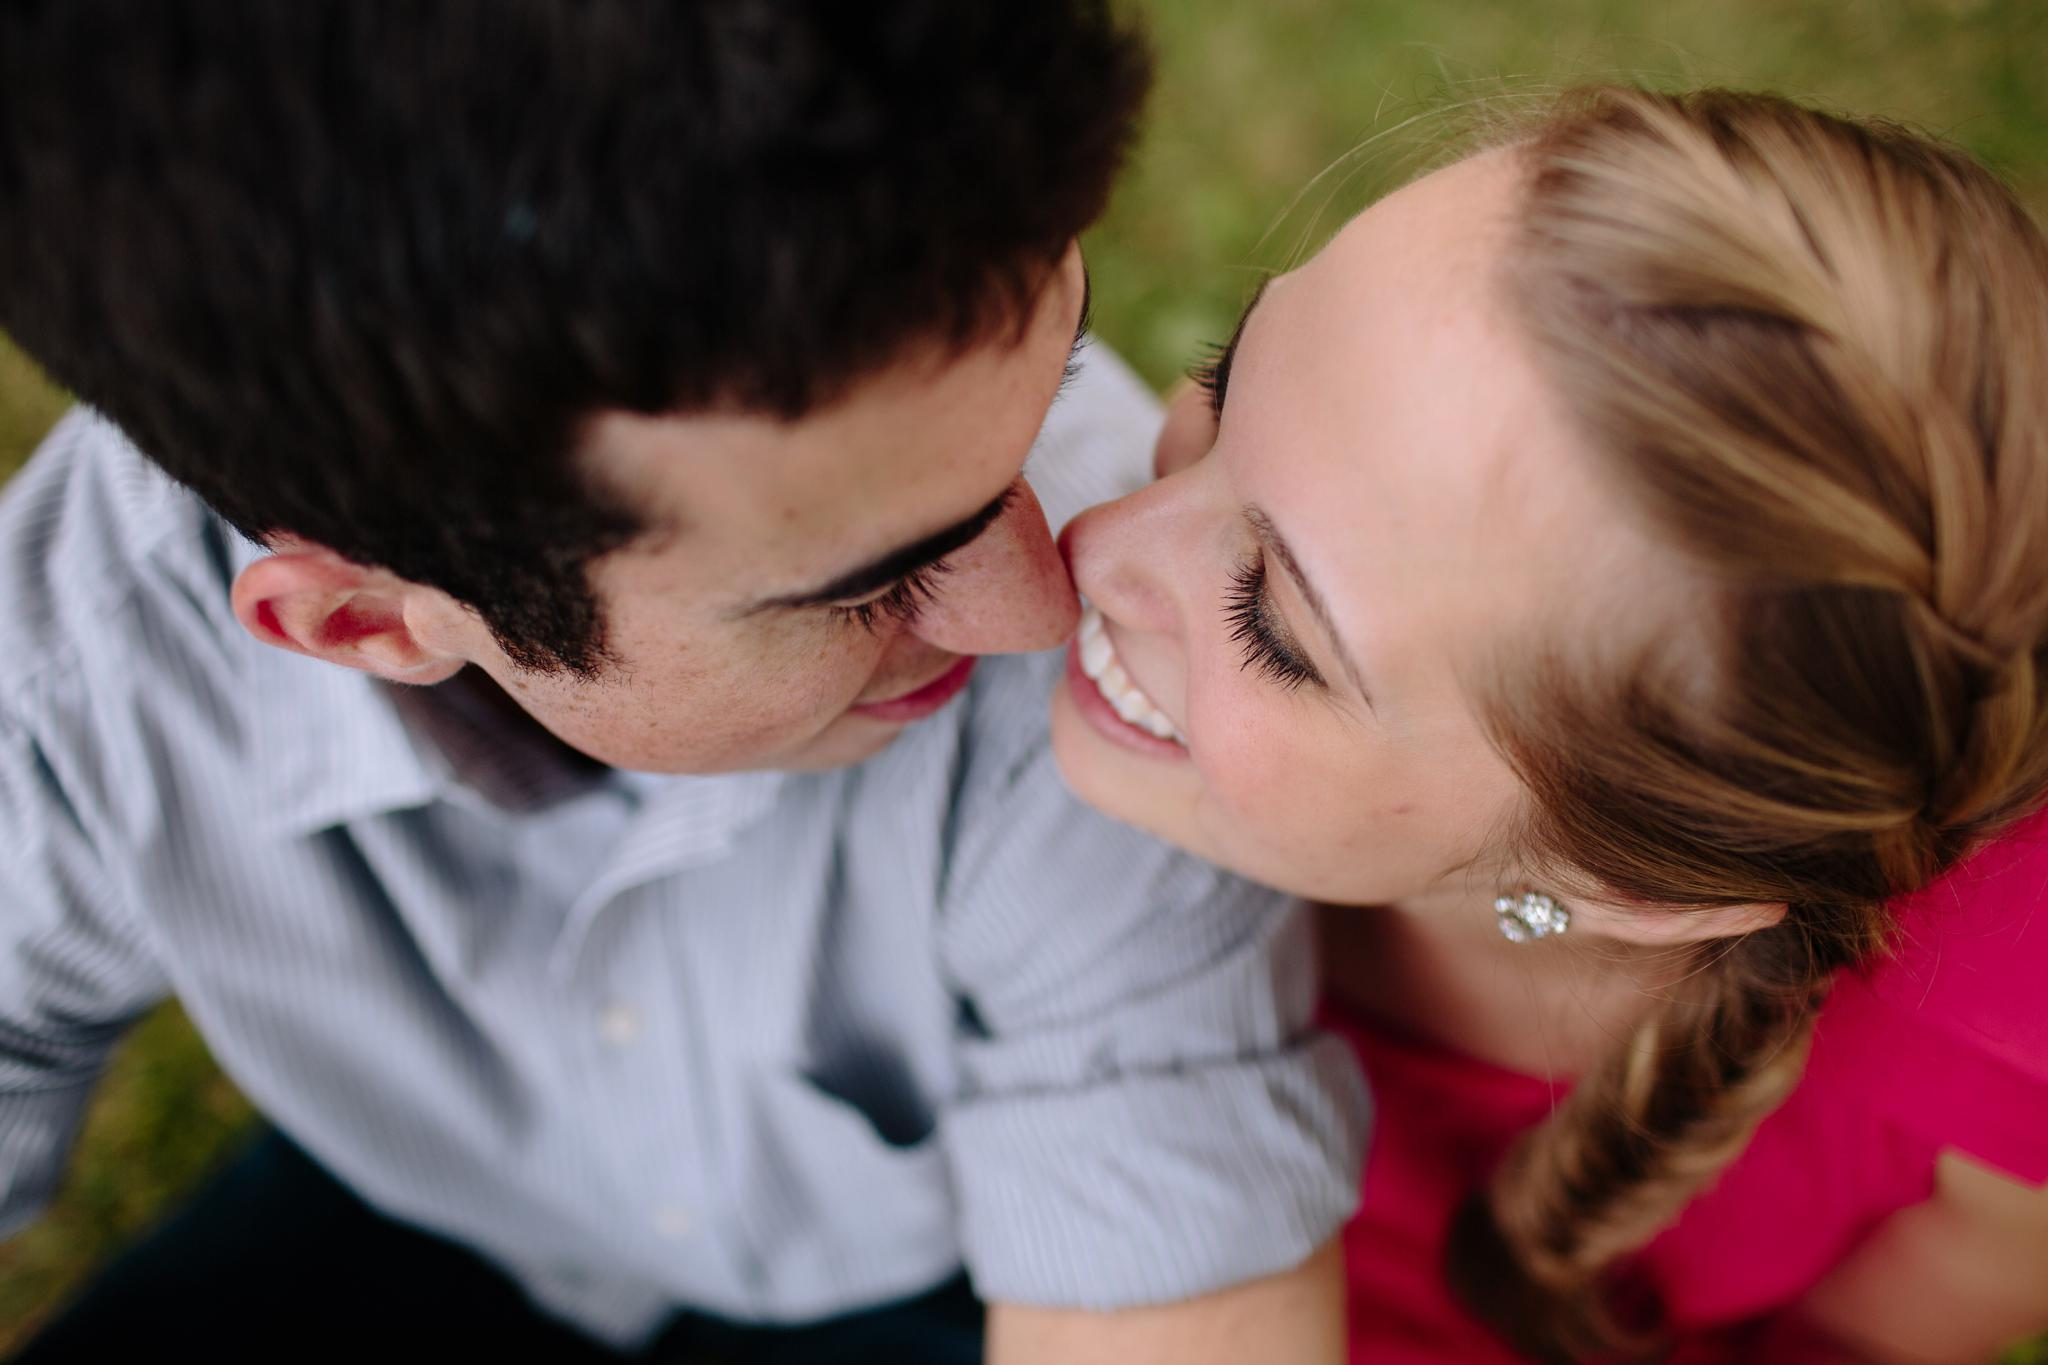 saddle_lake_engagement_session-78.jpg